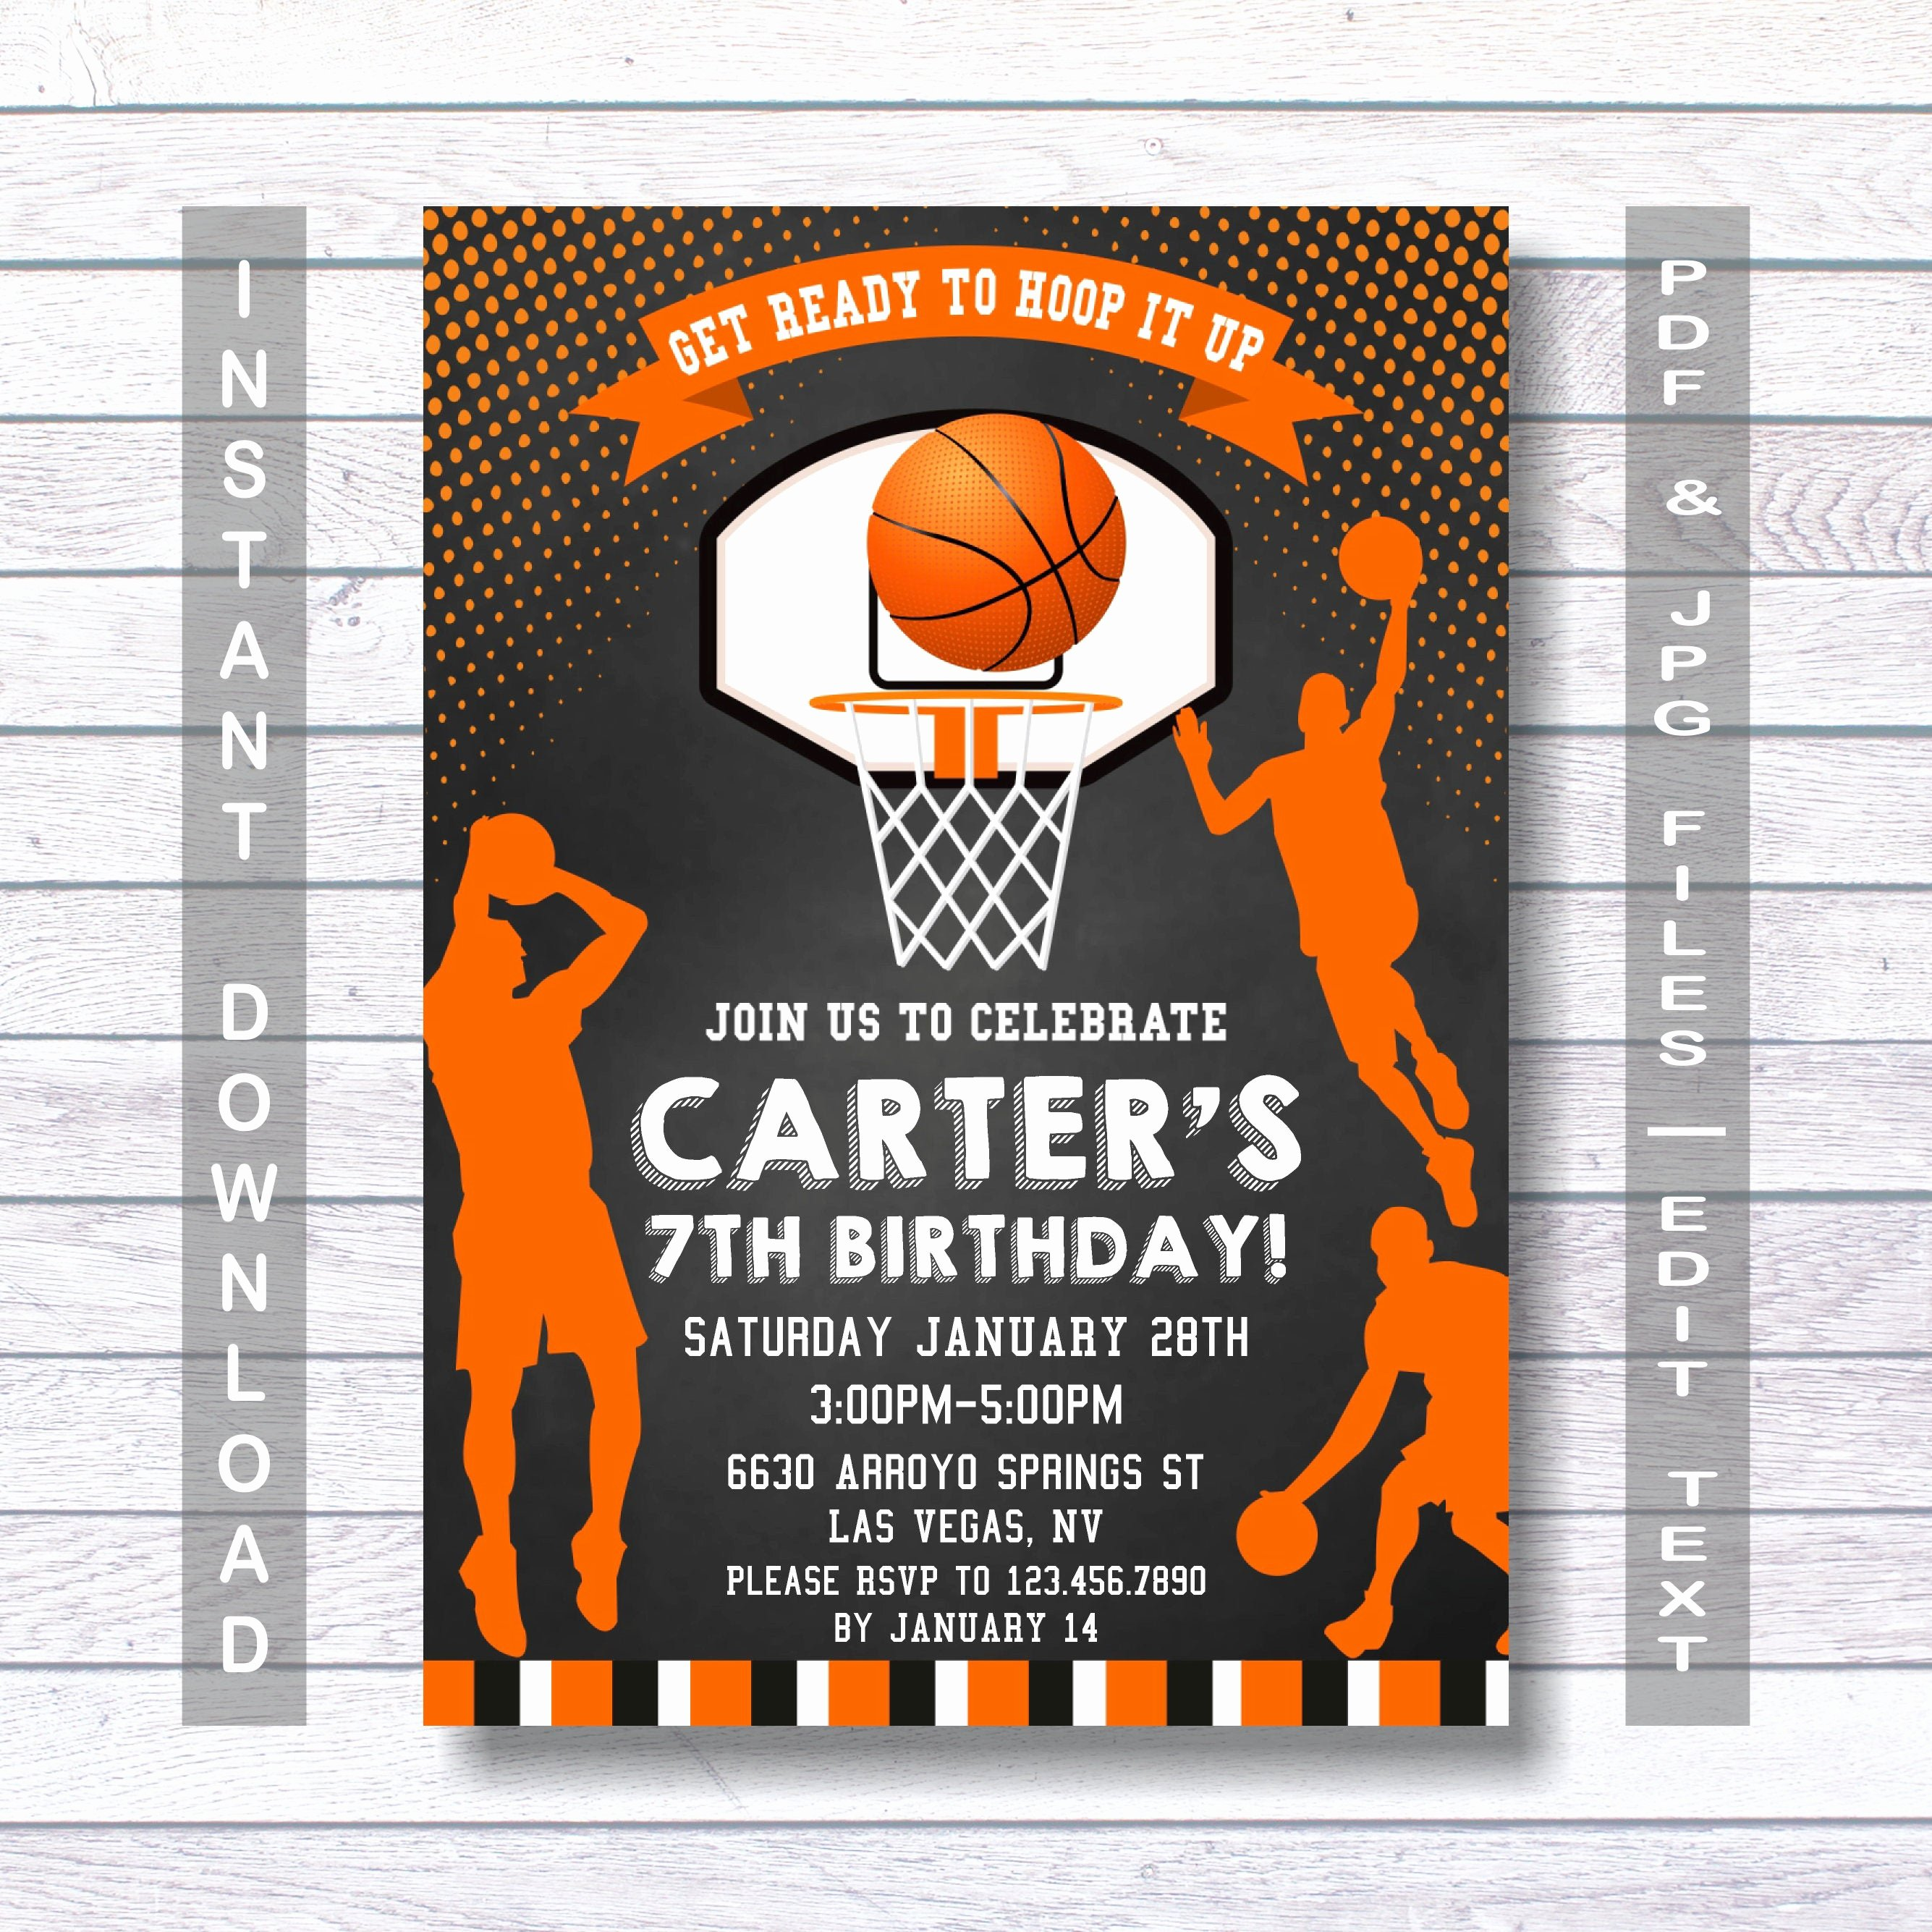 Basketball Ticket Invitation Template Free New Basketball Invitations Basketball Birthday Invitation